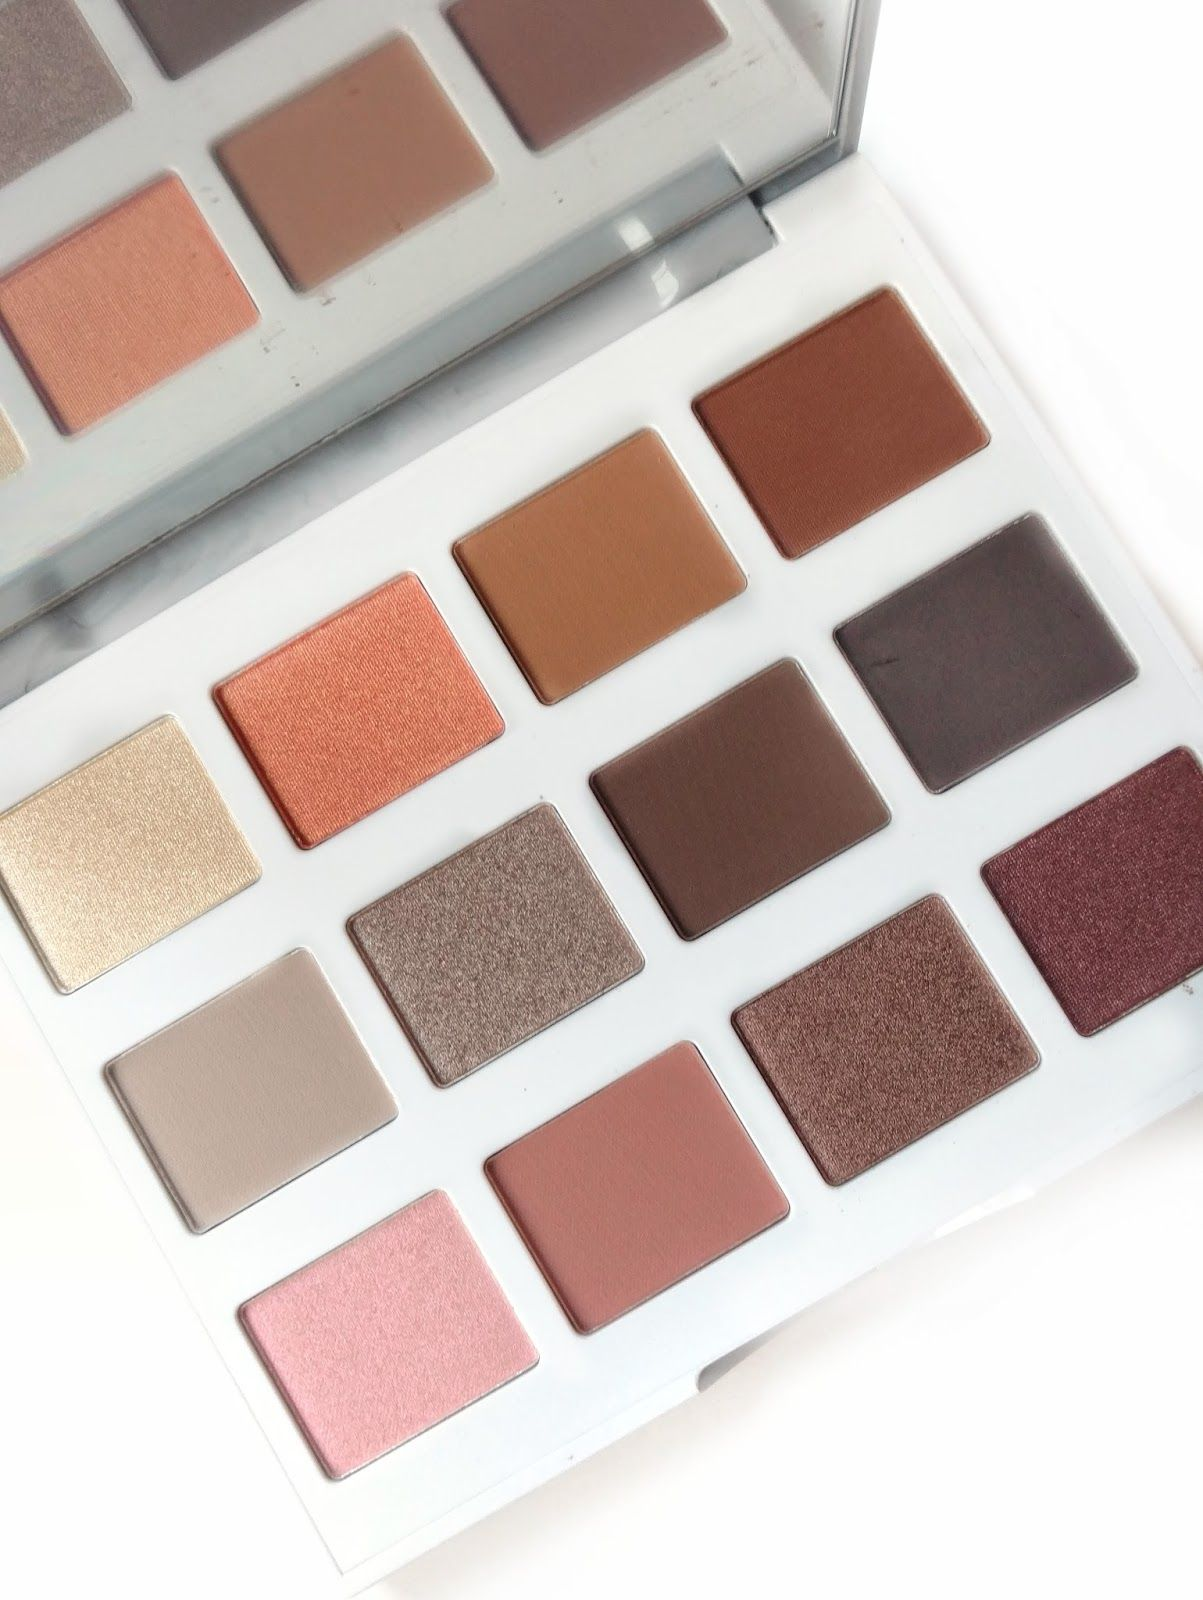 Bh Cosmetics Marble Collection Warm Stone Palette Review